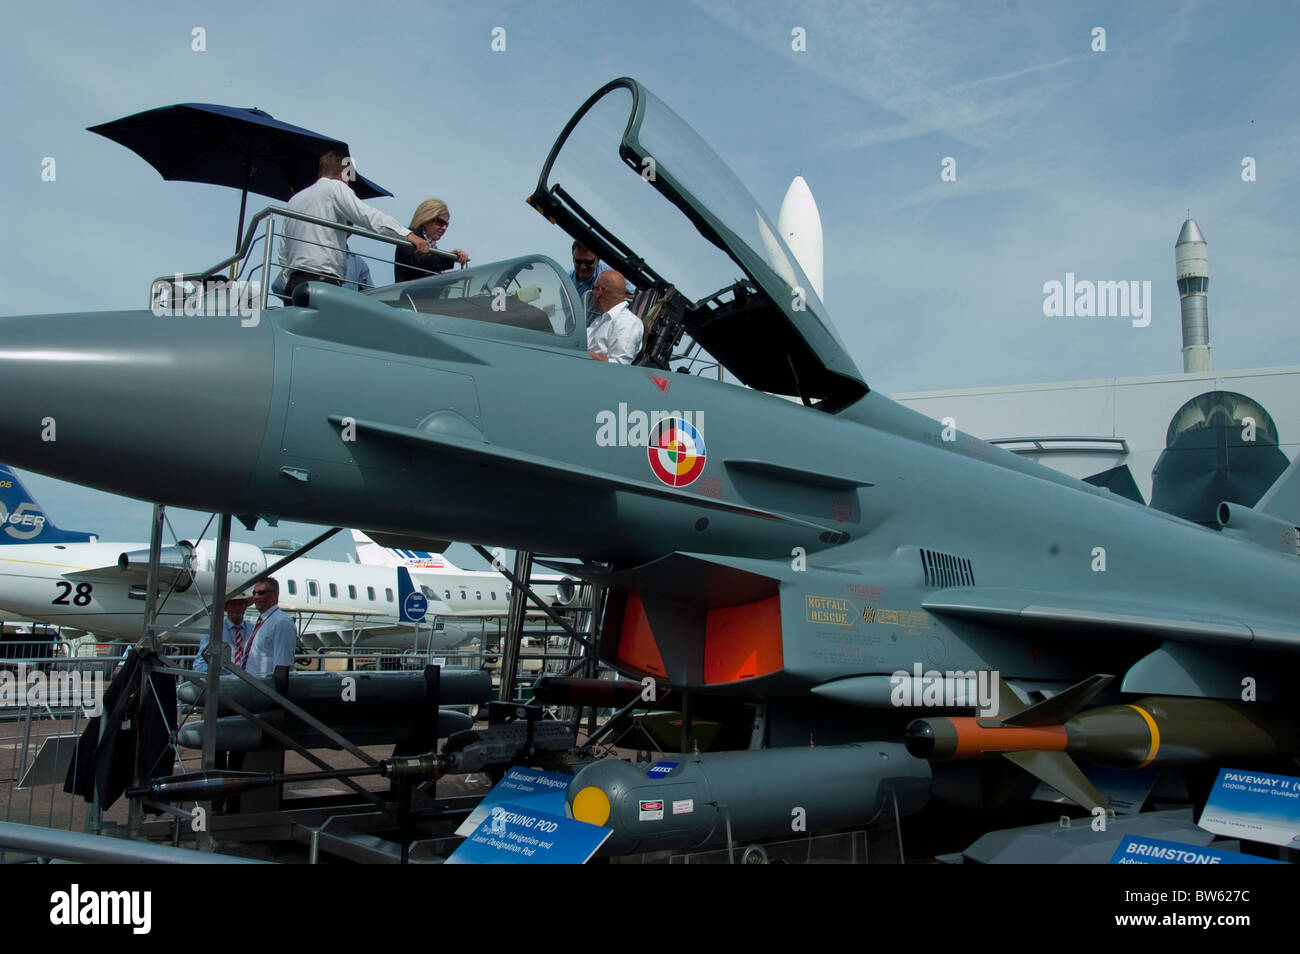 Paris, Fra-nce, Lockheed Martin Fighter Jet, Aeroplanes on Display,  Paris Air Show at the Bourget Airport, - Stock Image